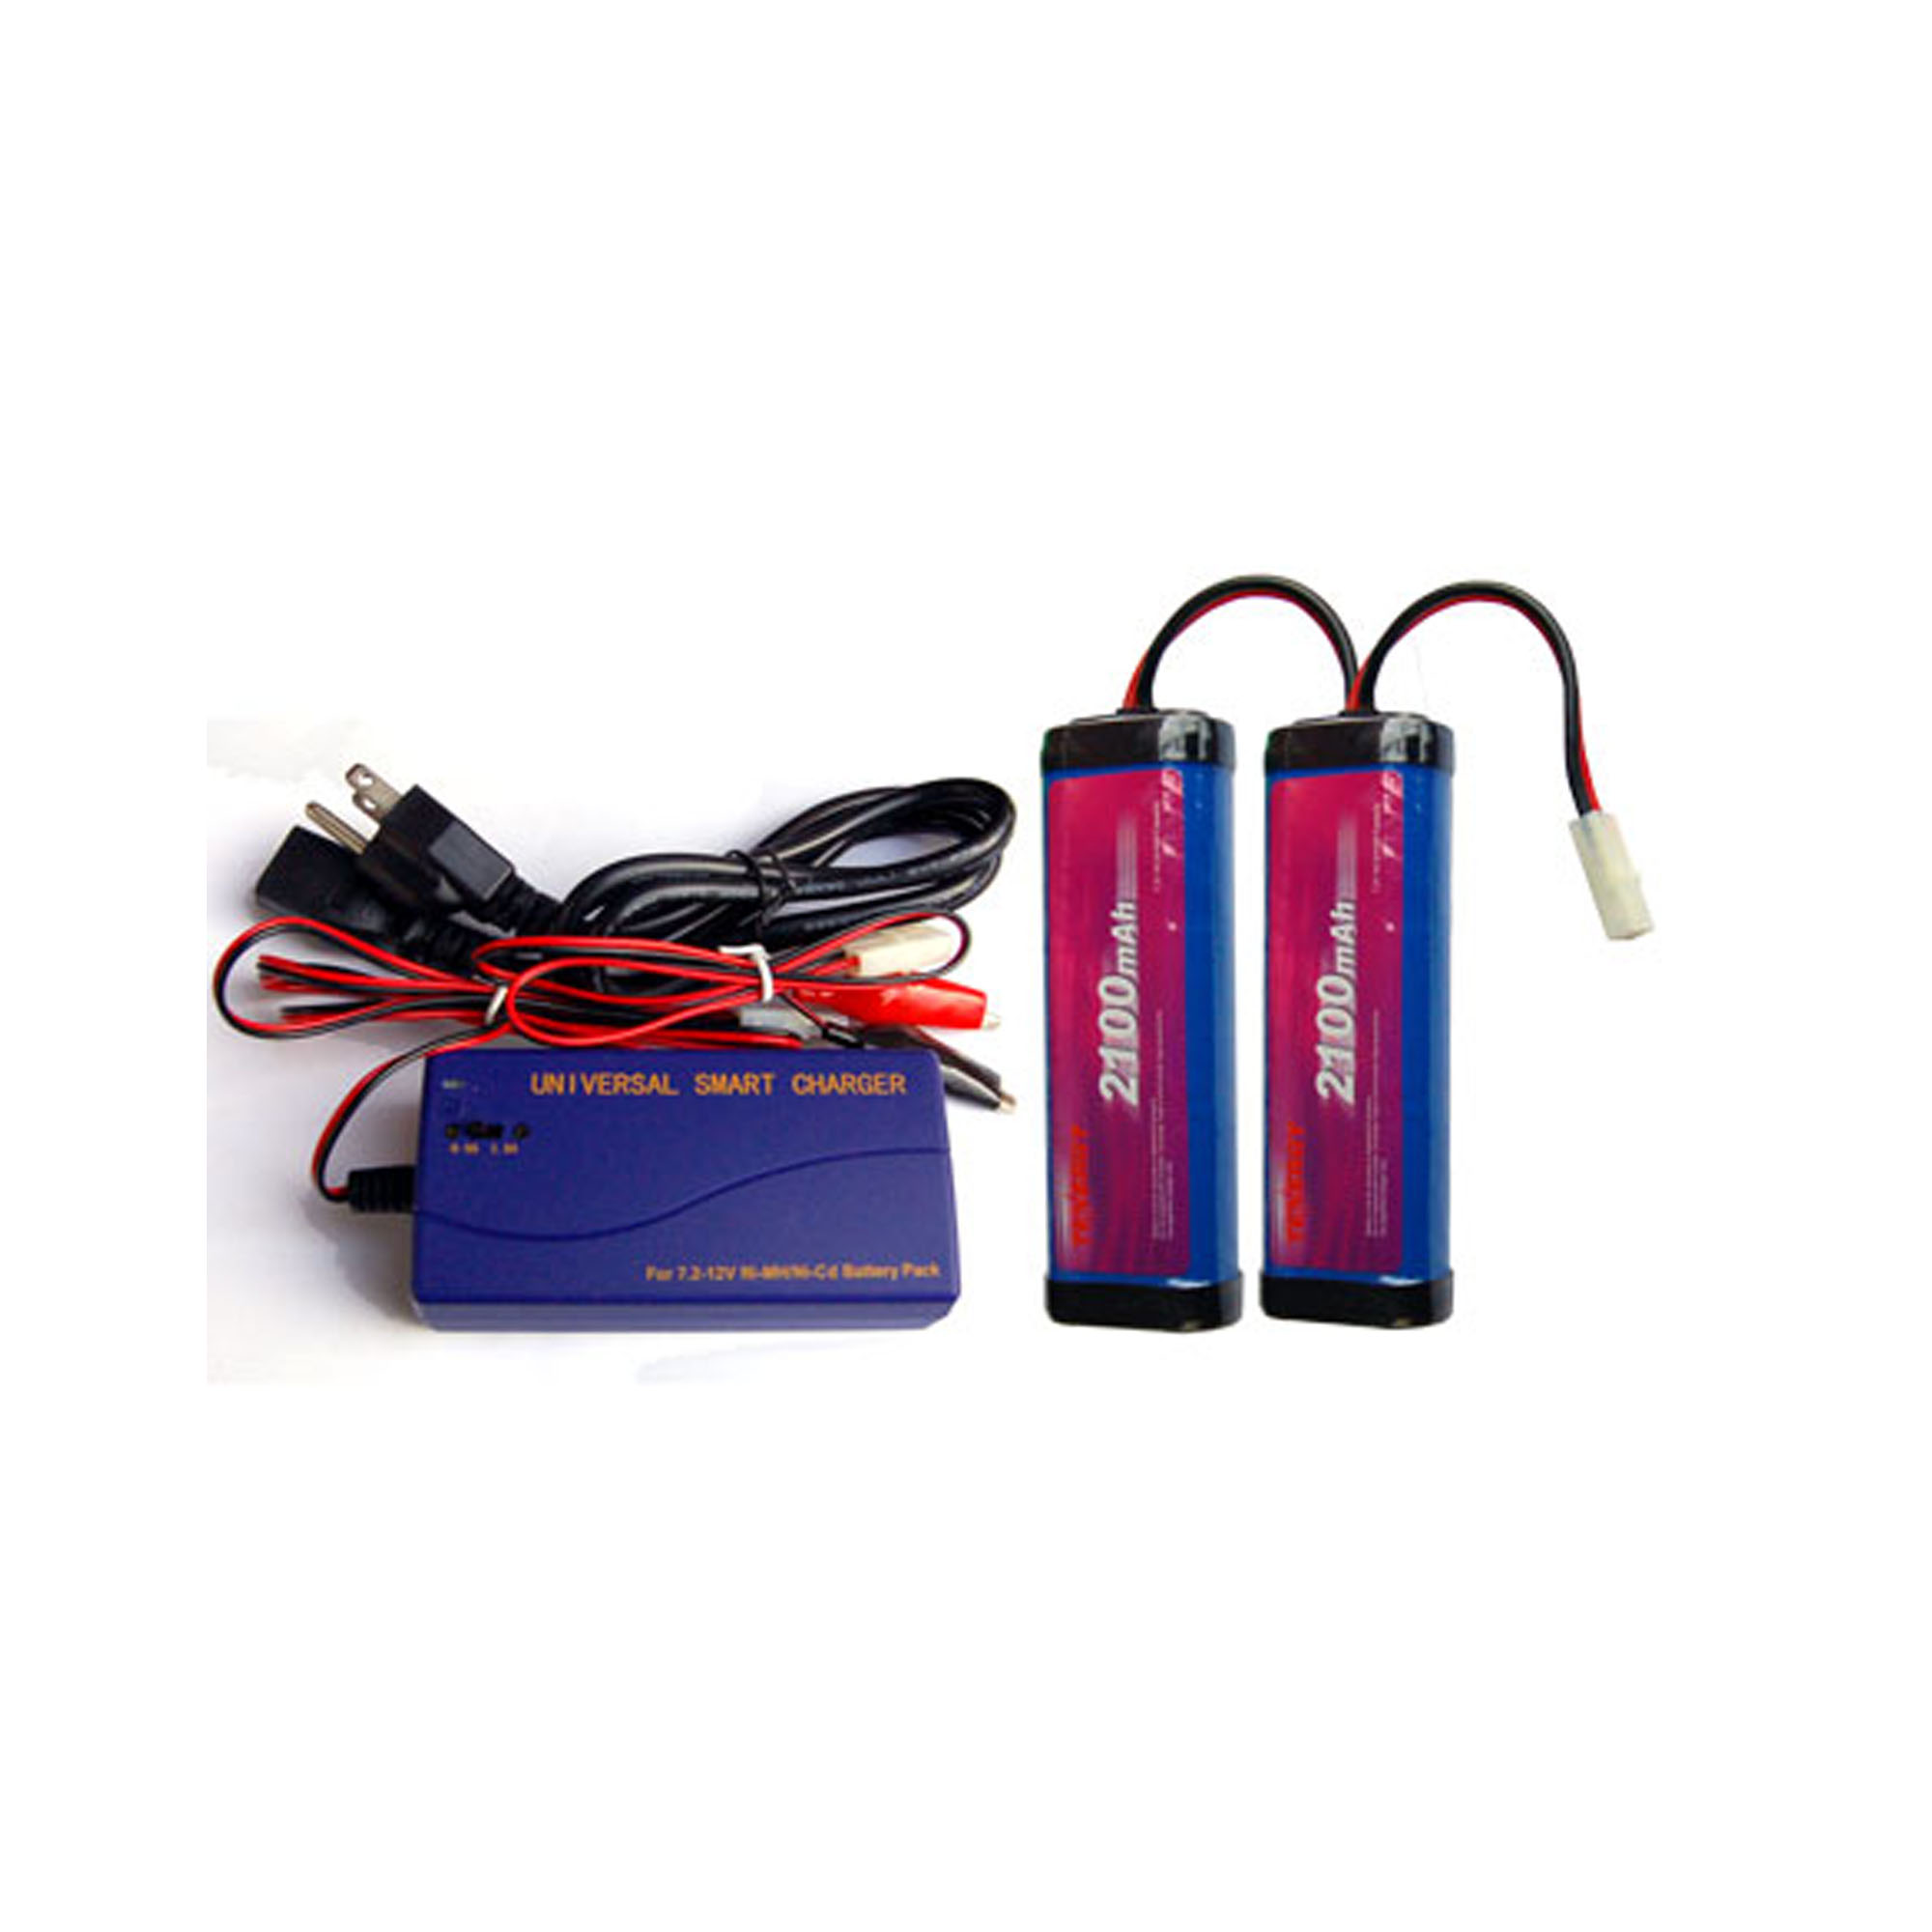 2 x 7.2 Volt NiCd Battery Packs (2100 mAh) + Universal Smart Charger - image 1 of 1